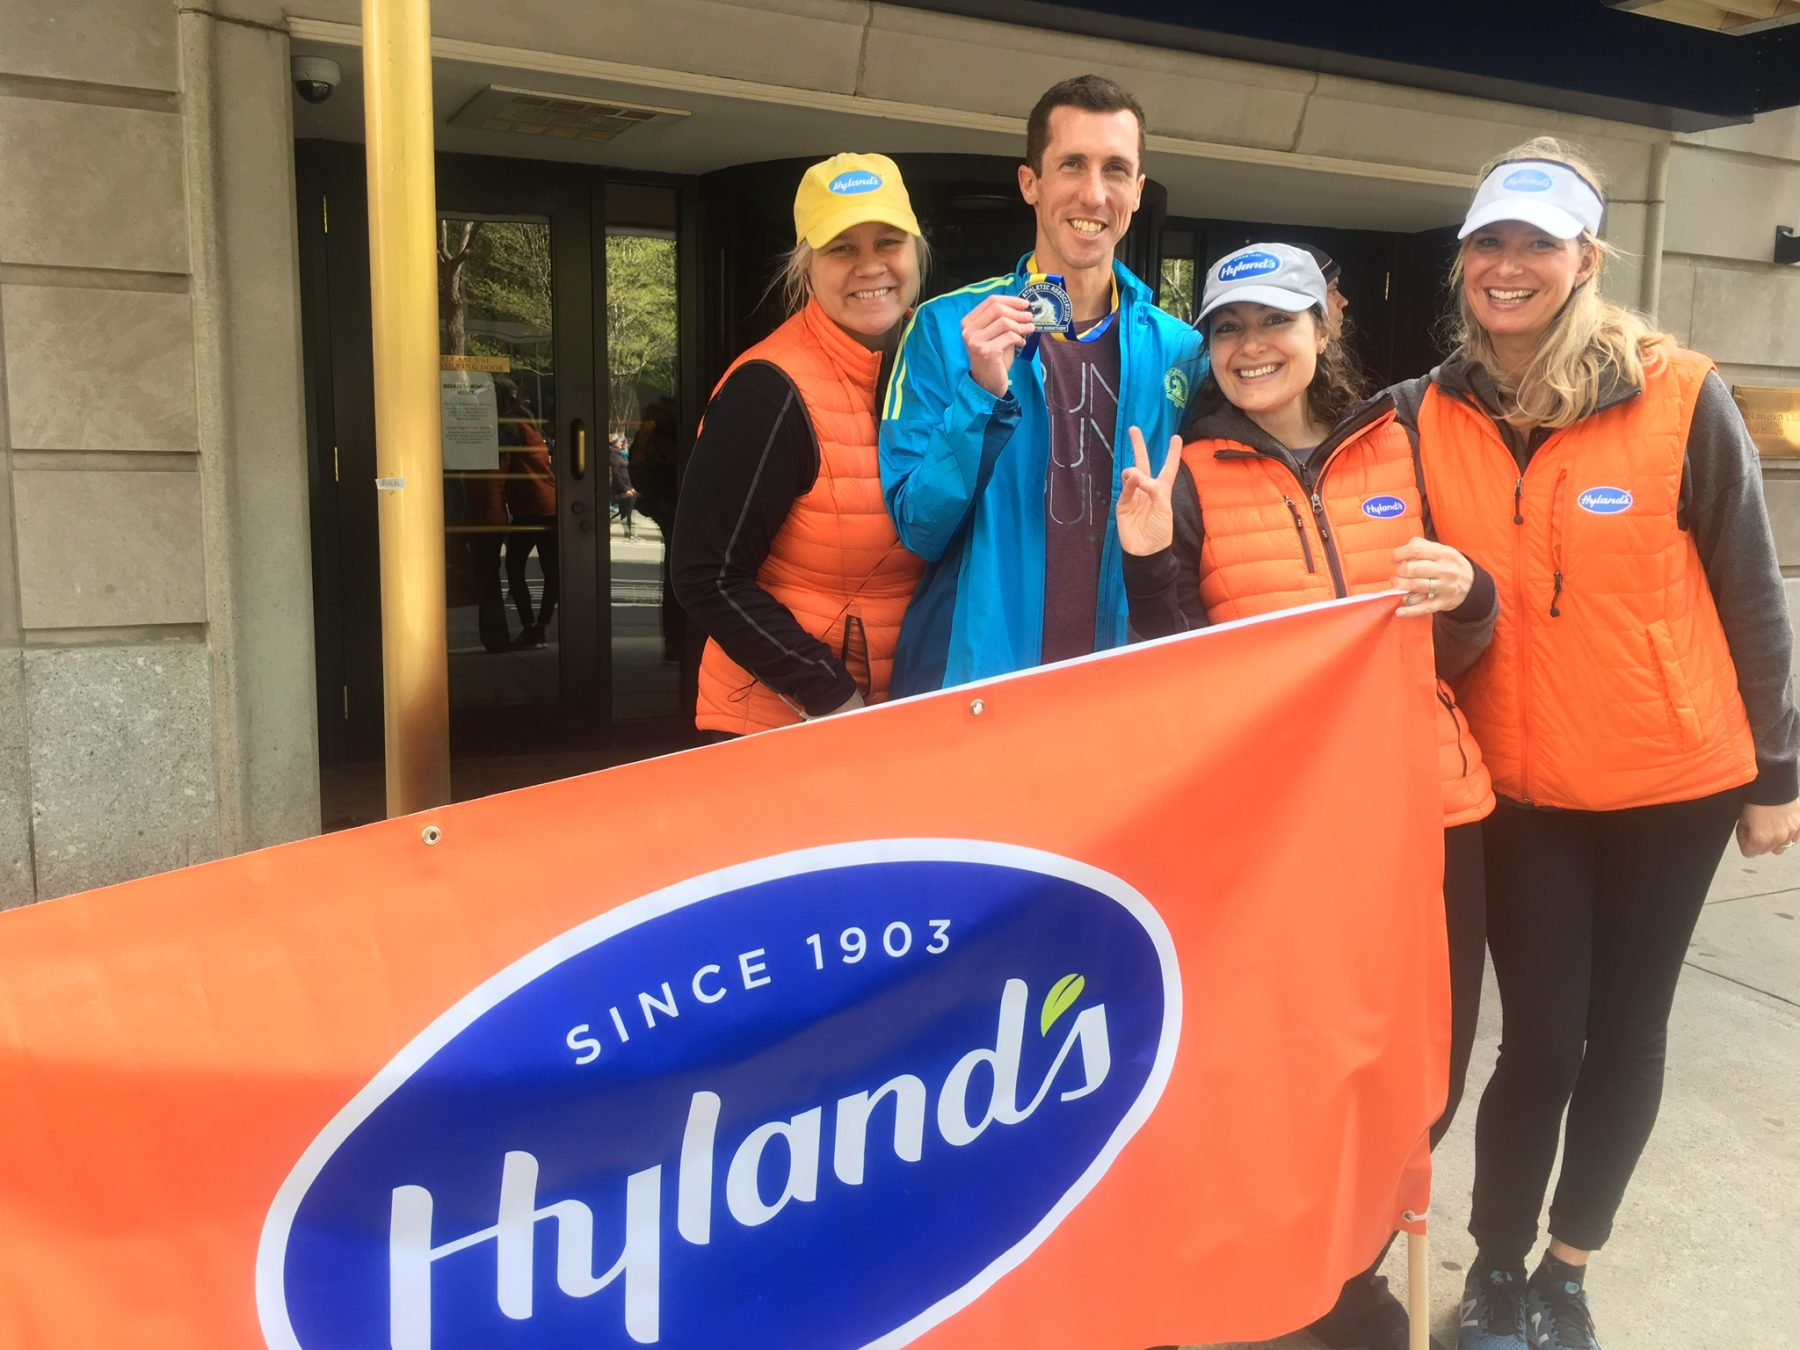 """3 women and a man with a Boston marathon medal standing behind an orange banner that reads """"Hyland's"""""""